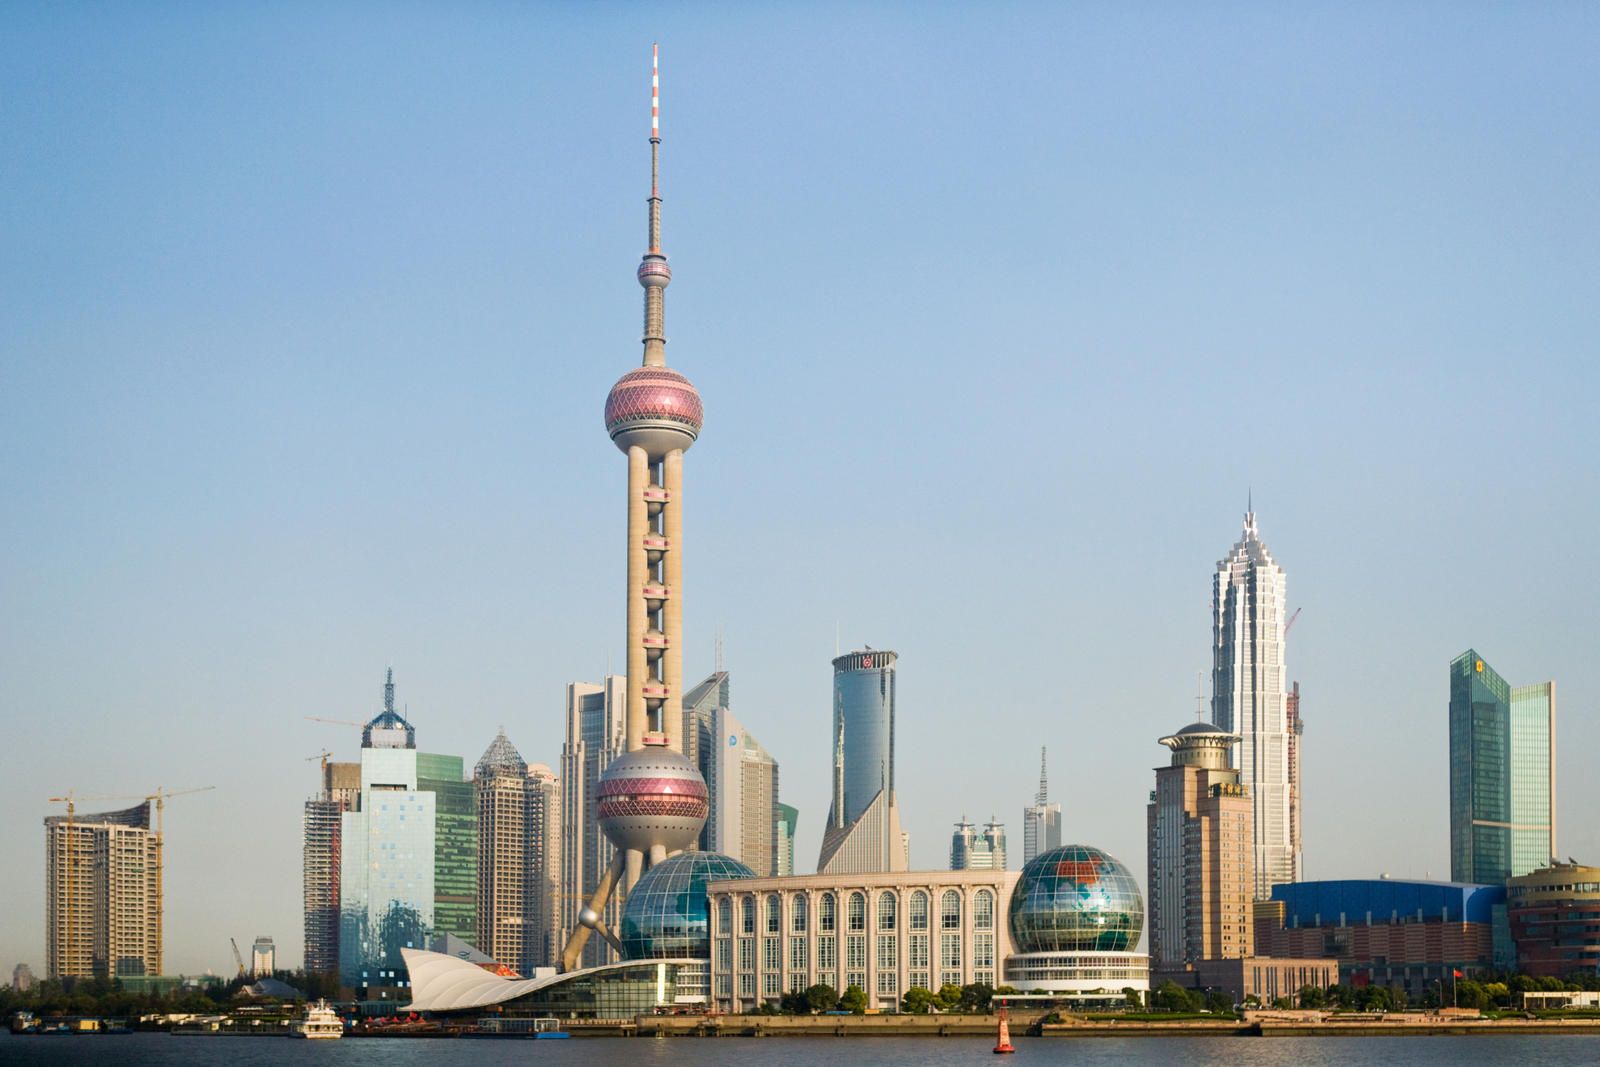 Shanghai City Scape (Getty)